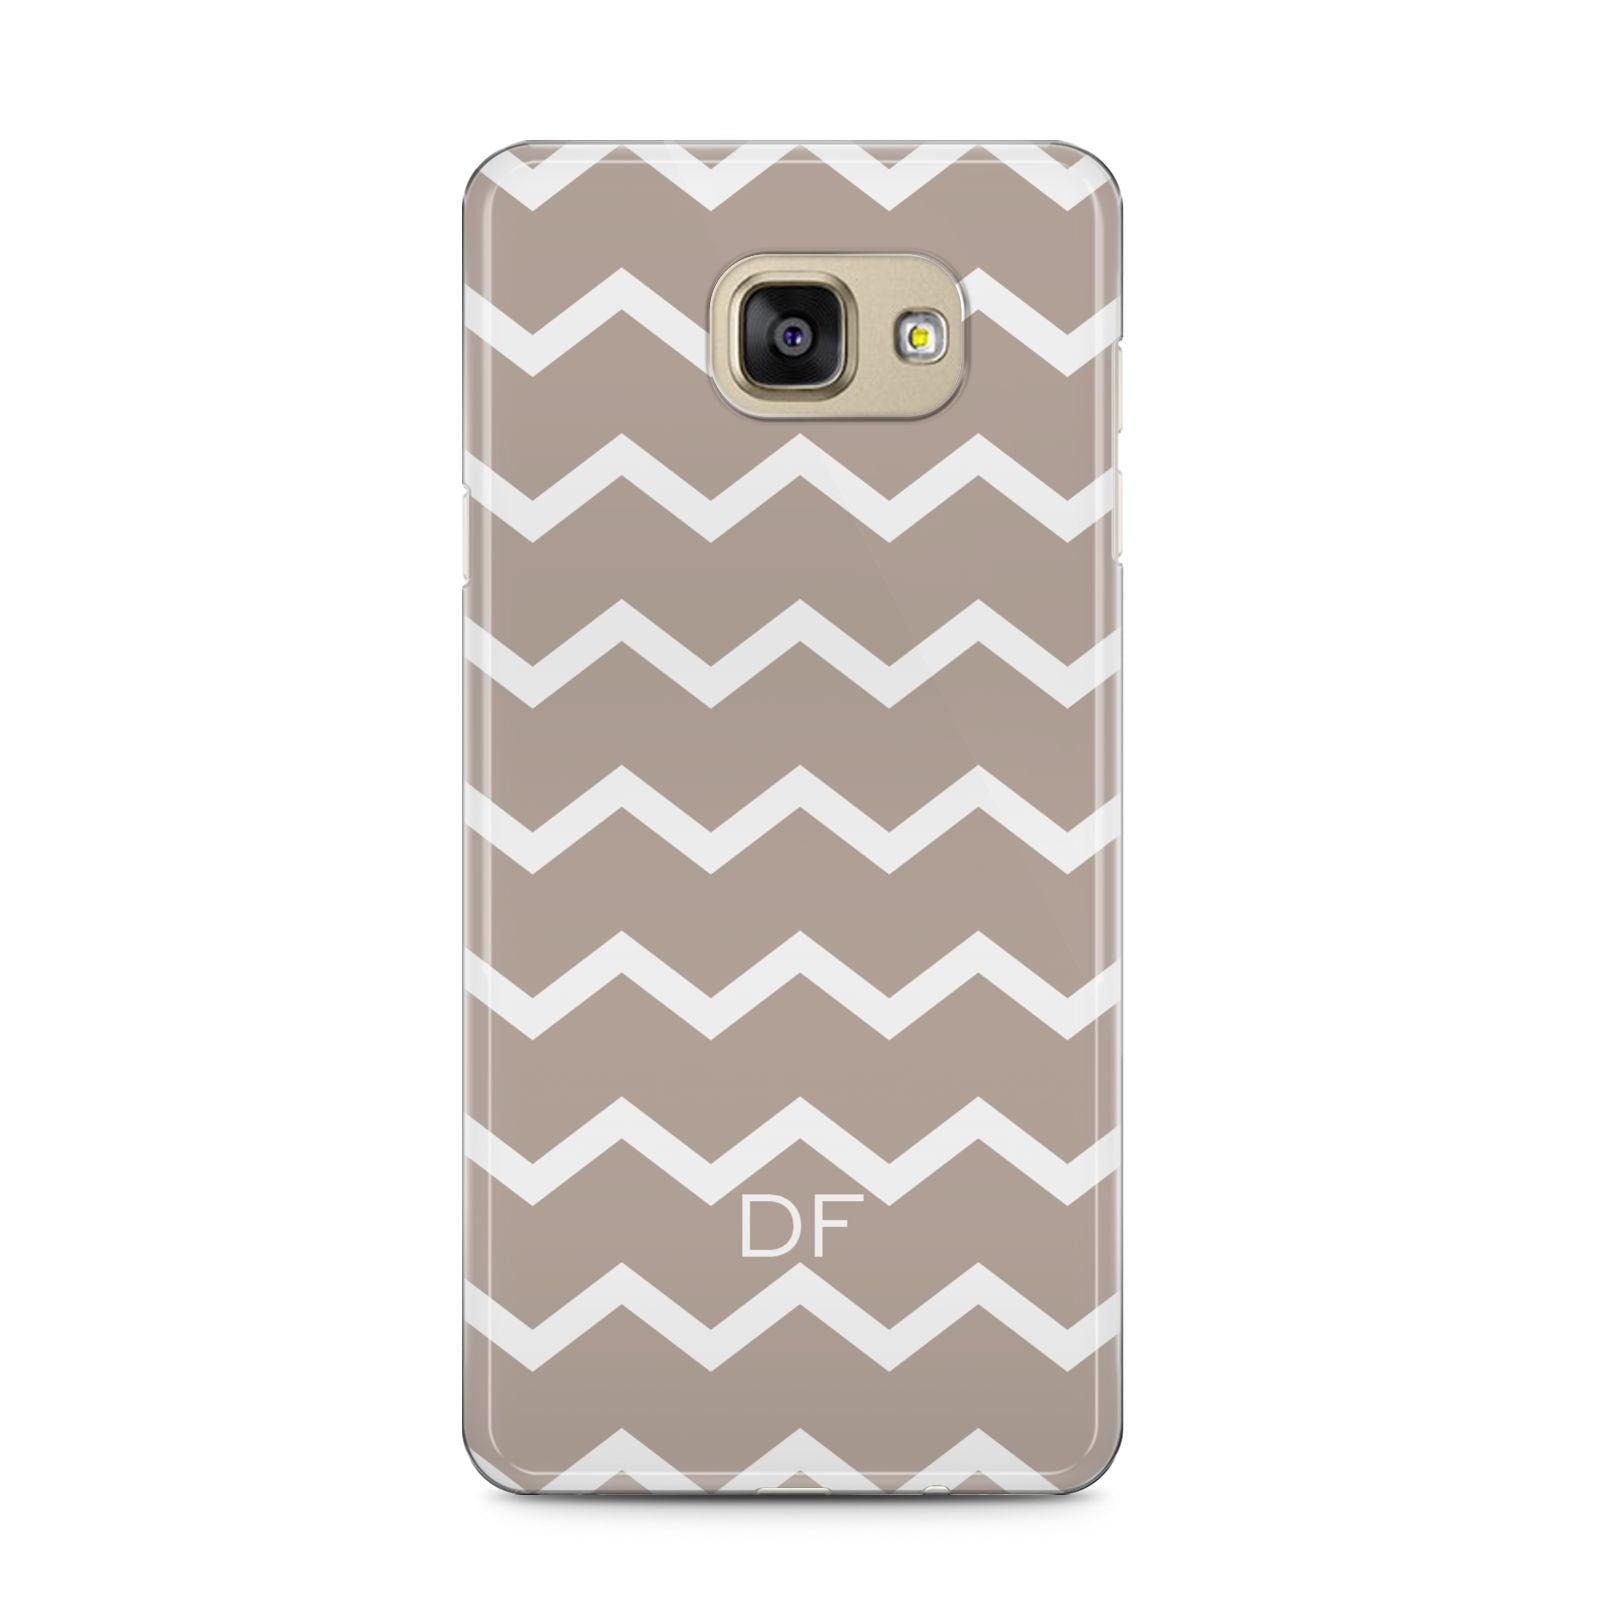 Personalised Chevron Beige Samsung Galaxy A5 2016 Case on gold phone